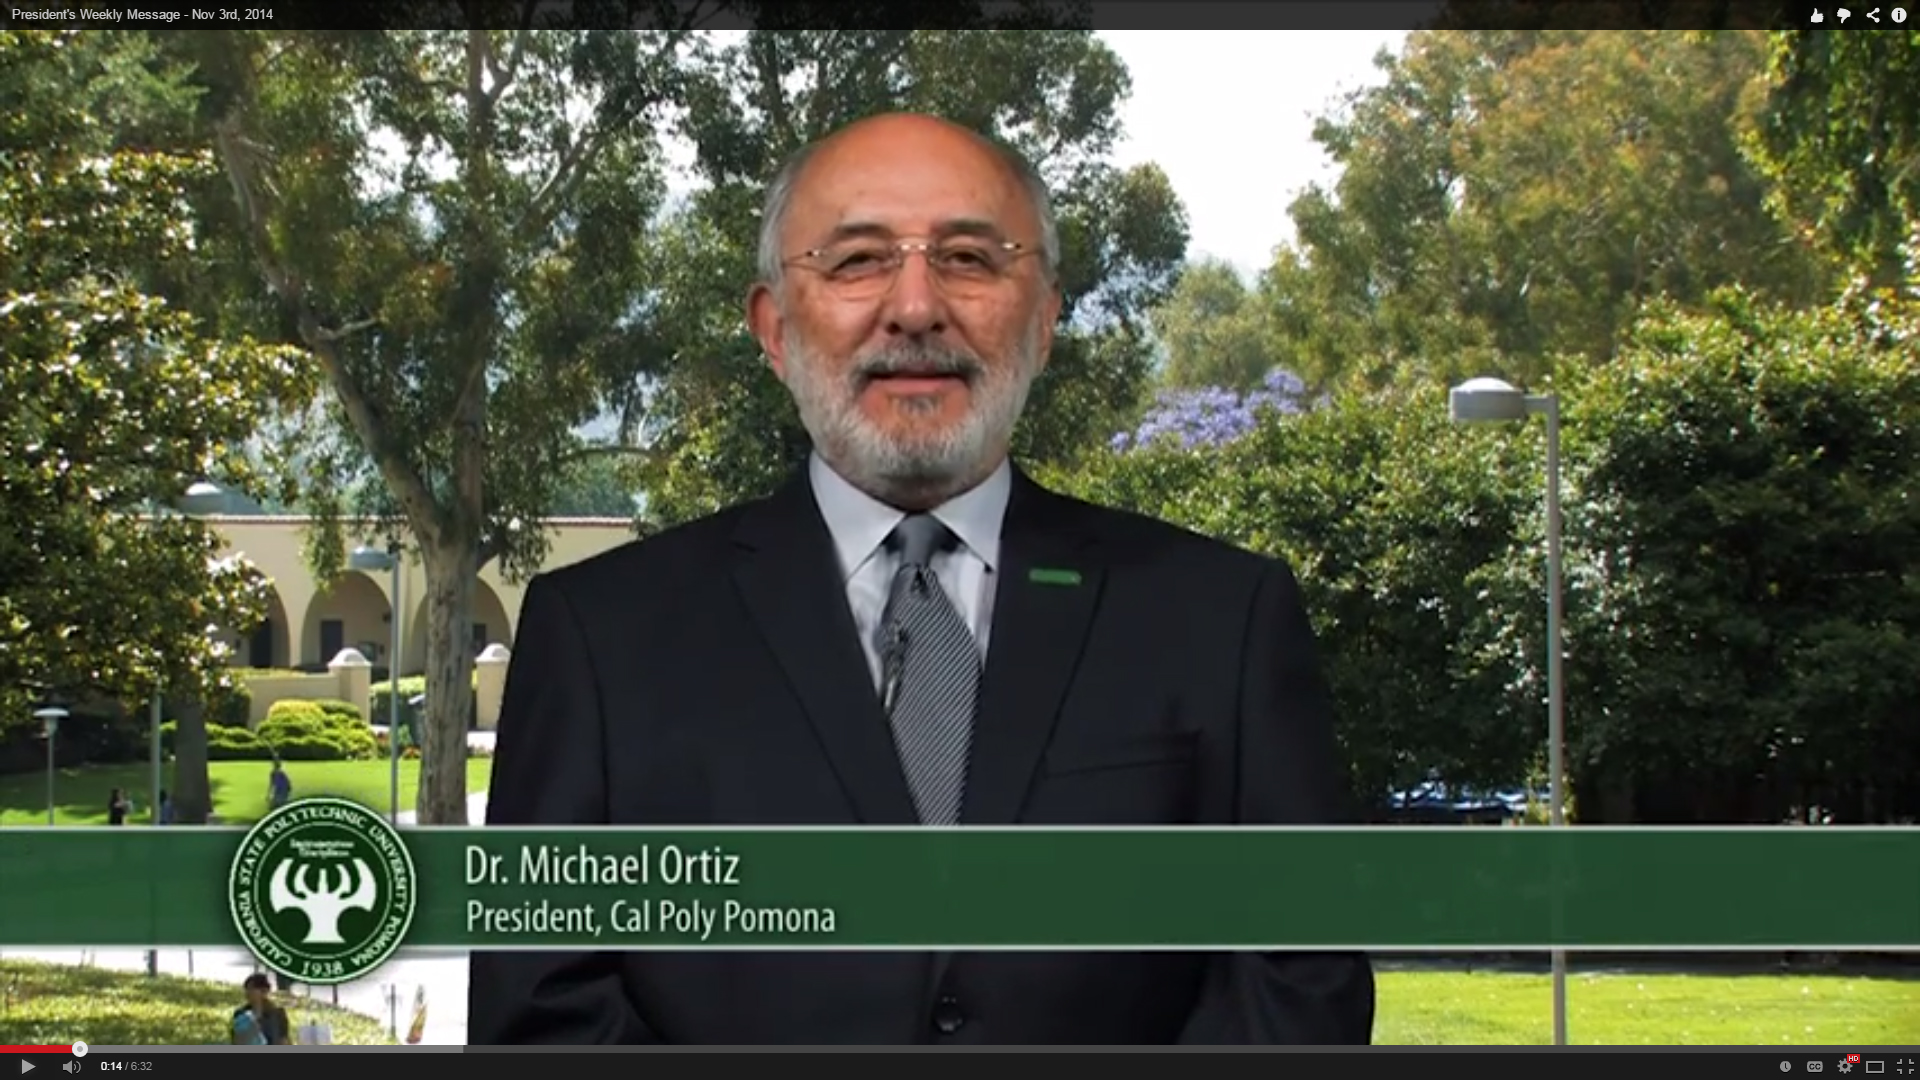 President Ortiz delivers his video update for Nov. 3, 2014.